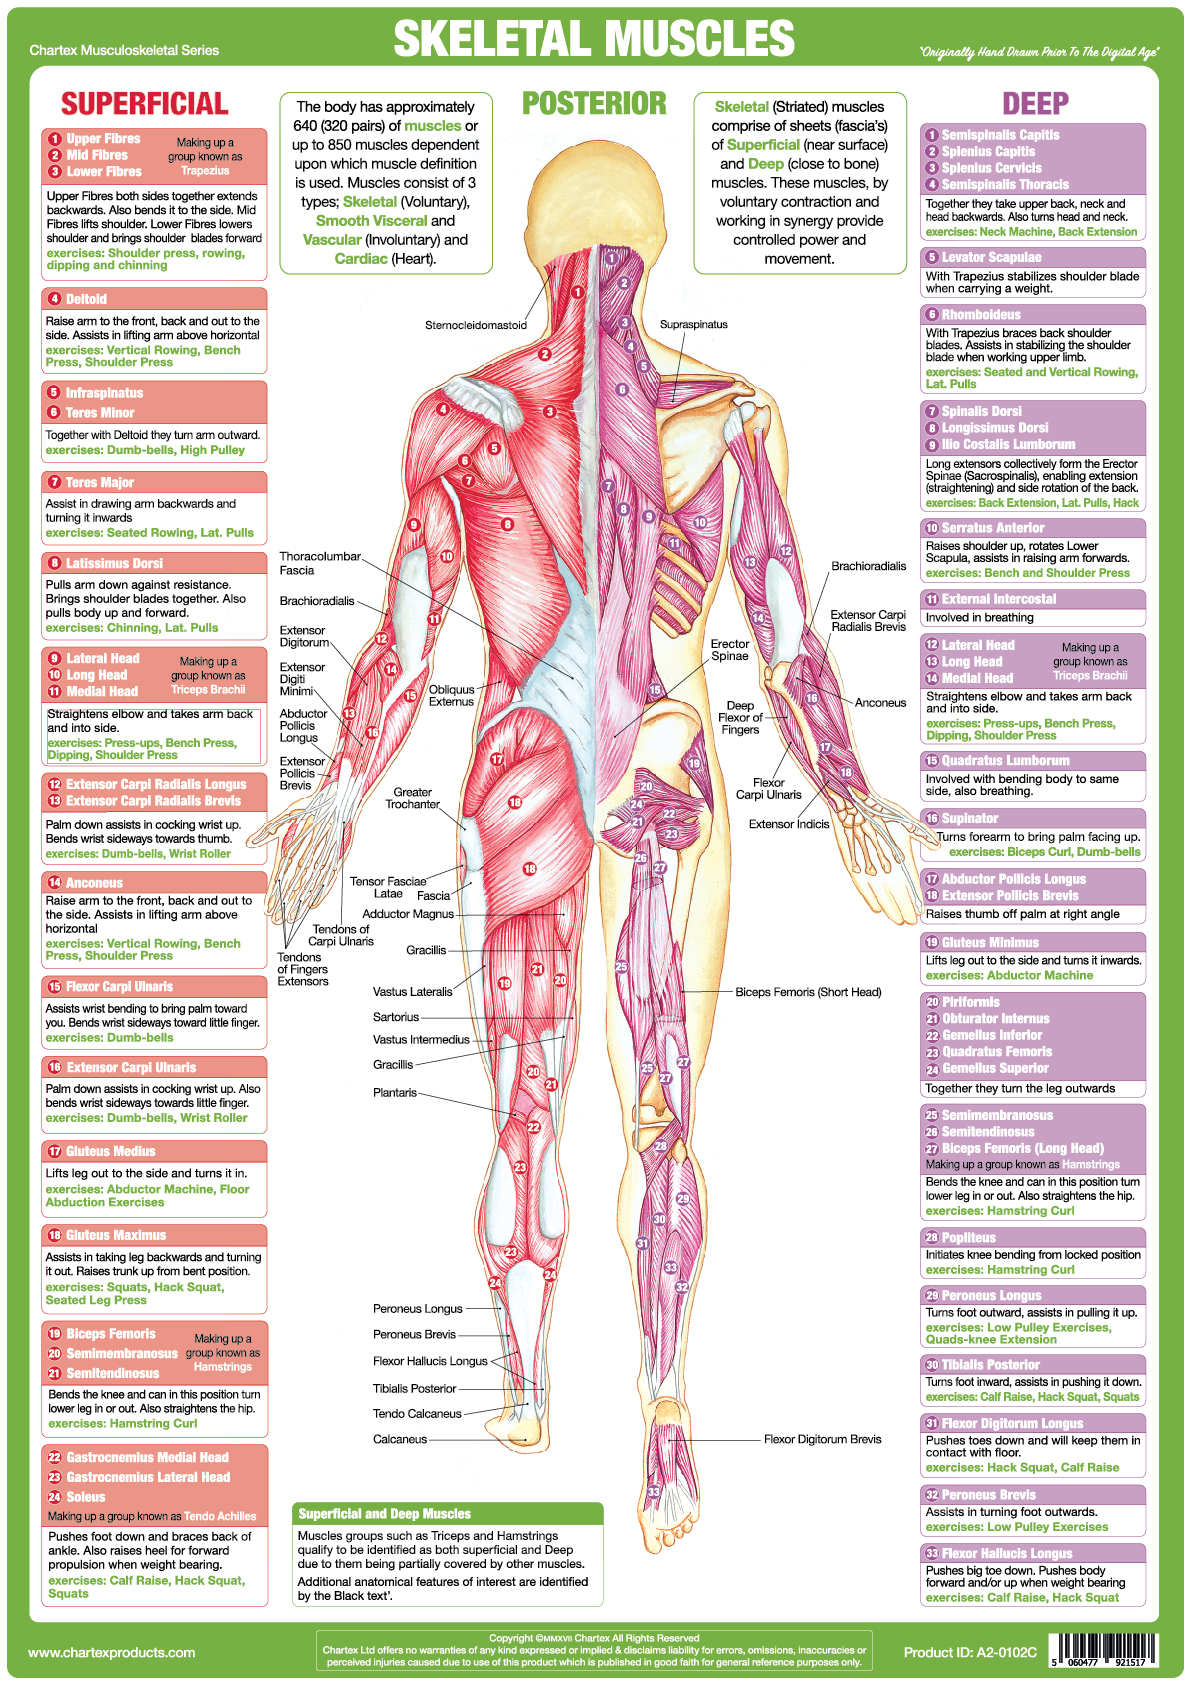 Jan Roscoe Publications Categories Posters Wall Charts Skeletal